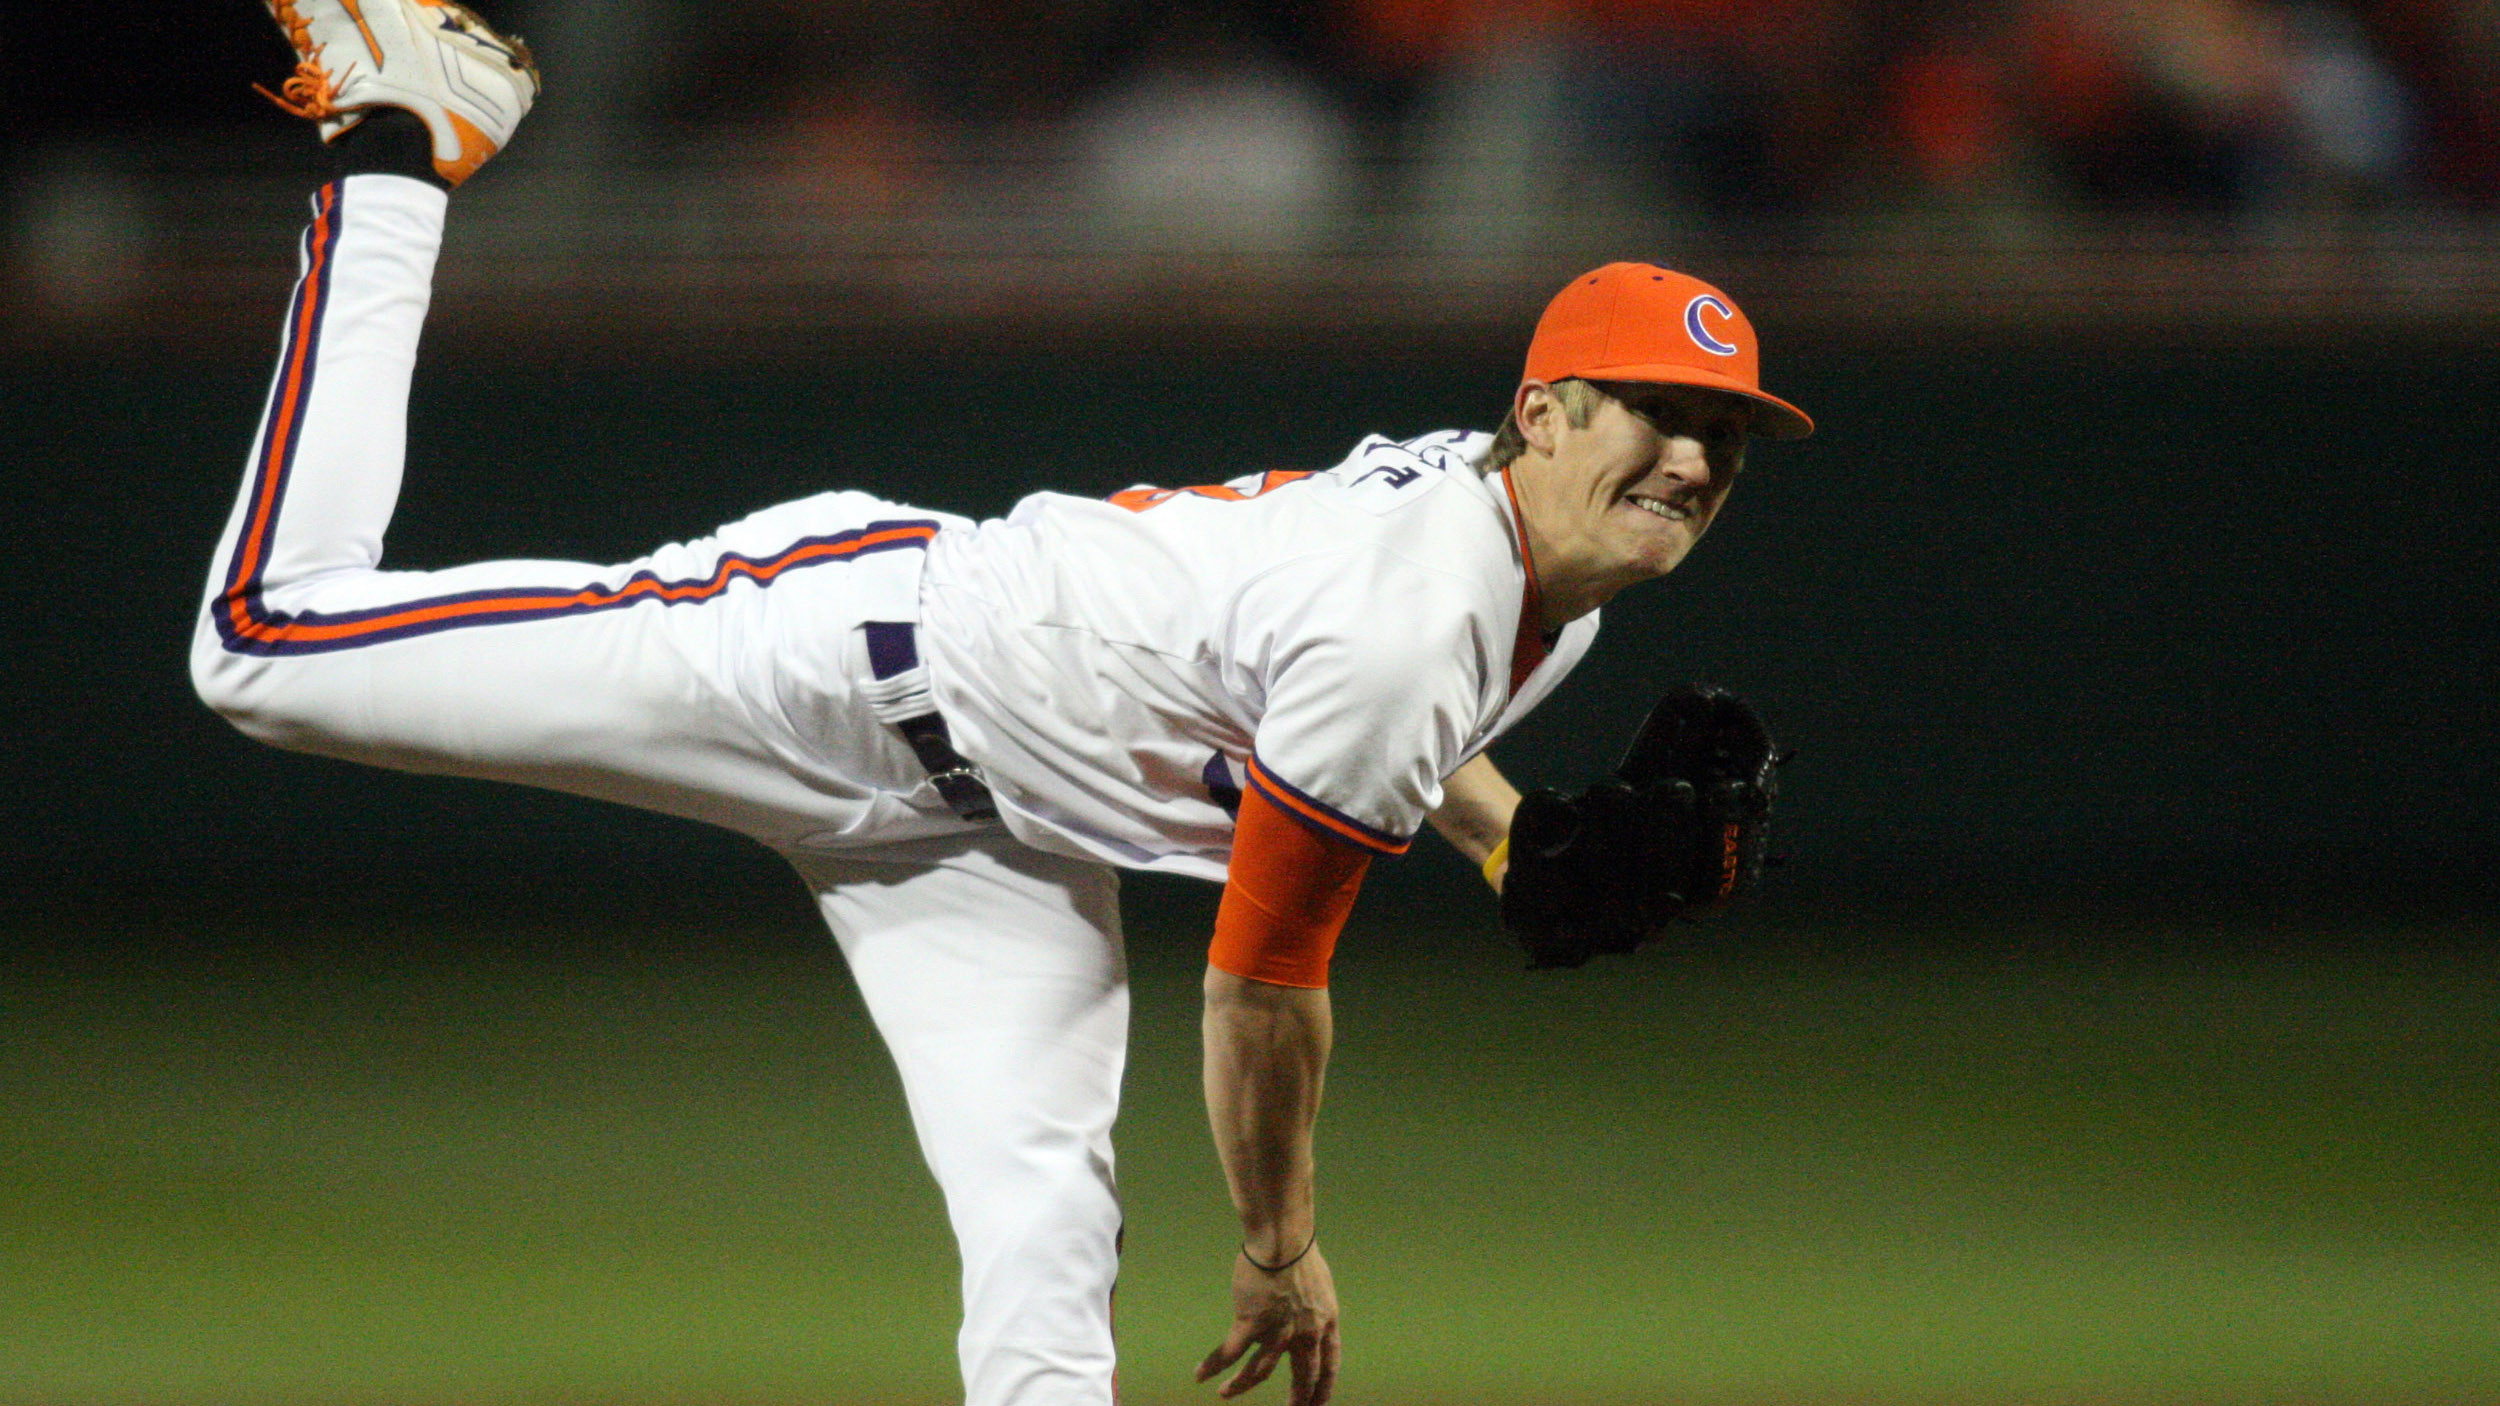 Virginia's Papi, Clemson's Gossett Earn ACC Baseball Weekly Honors